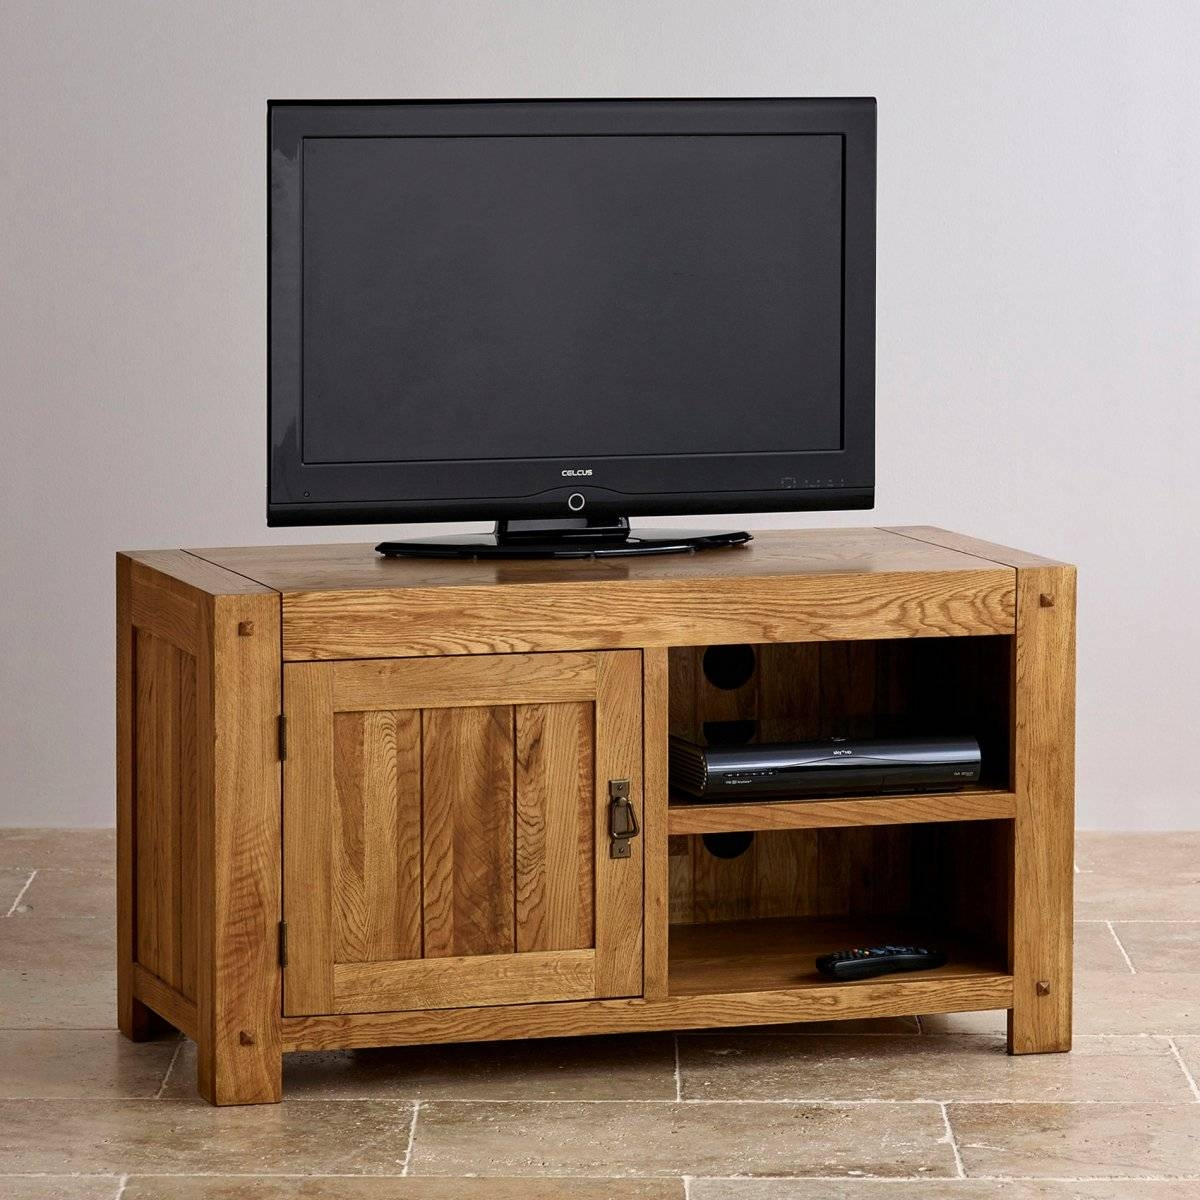 Quercus Tv Cabinet In Rustic Solid Oak | Oak Furniture Land with Small Tv Cabinets (Image 9 of 15)